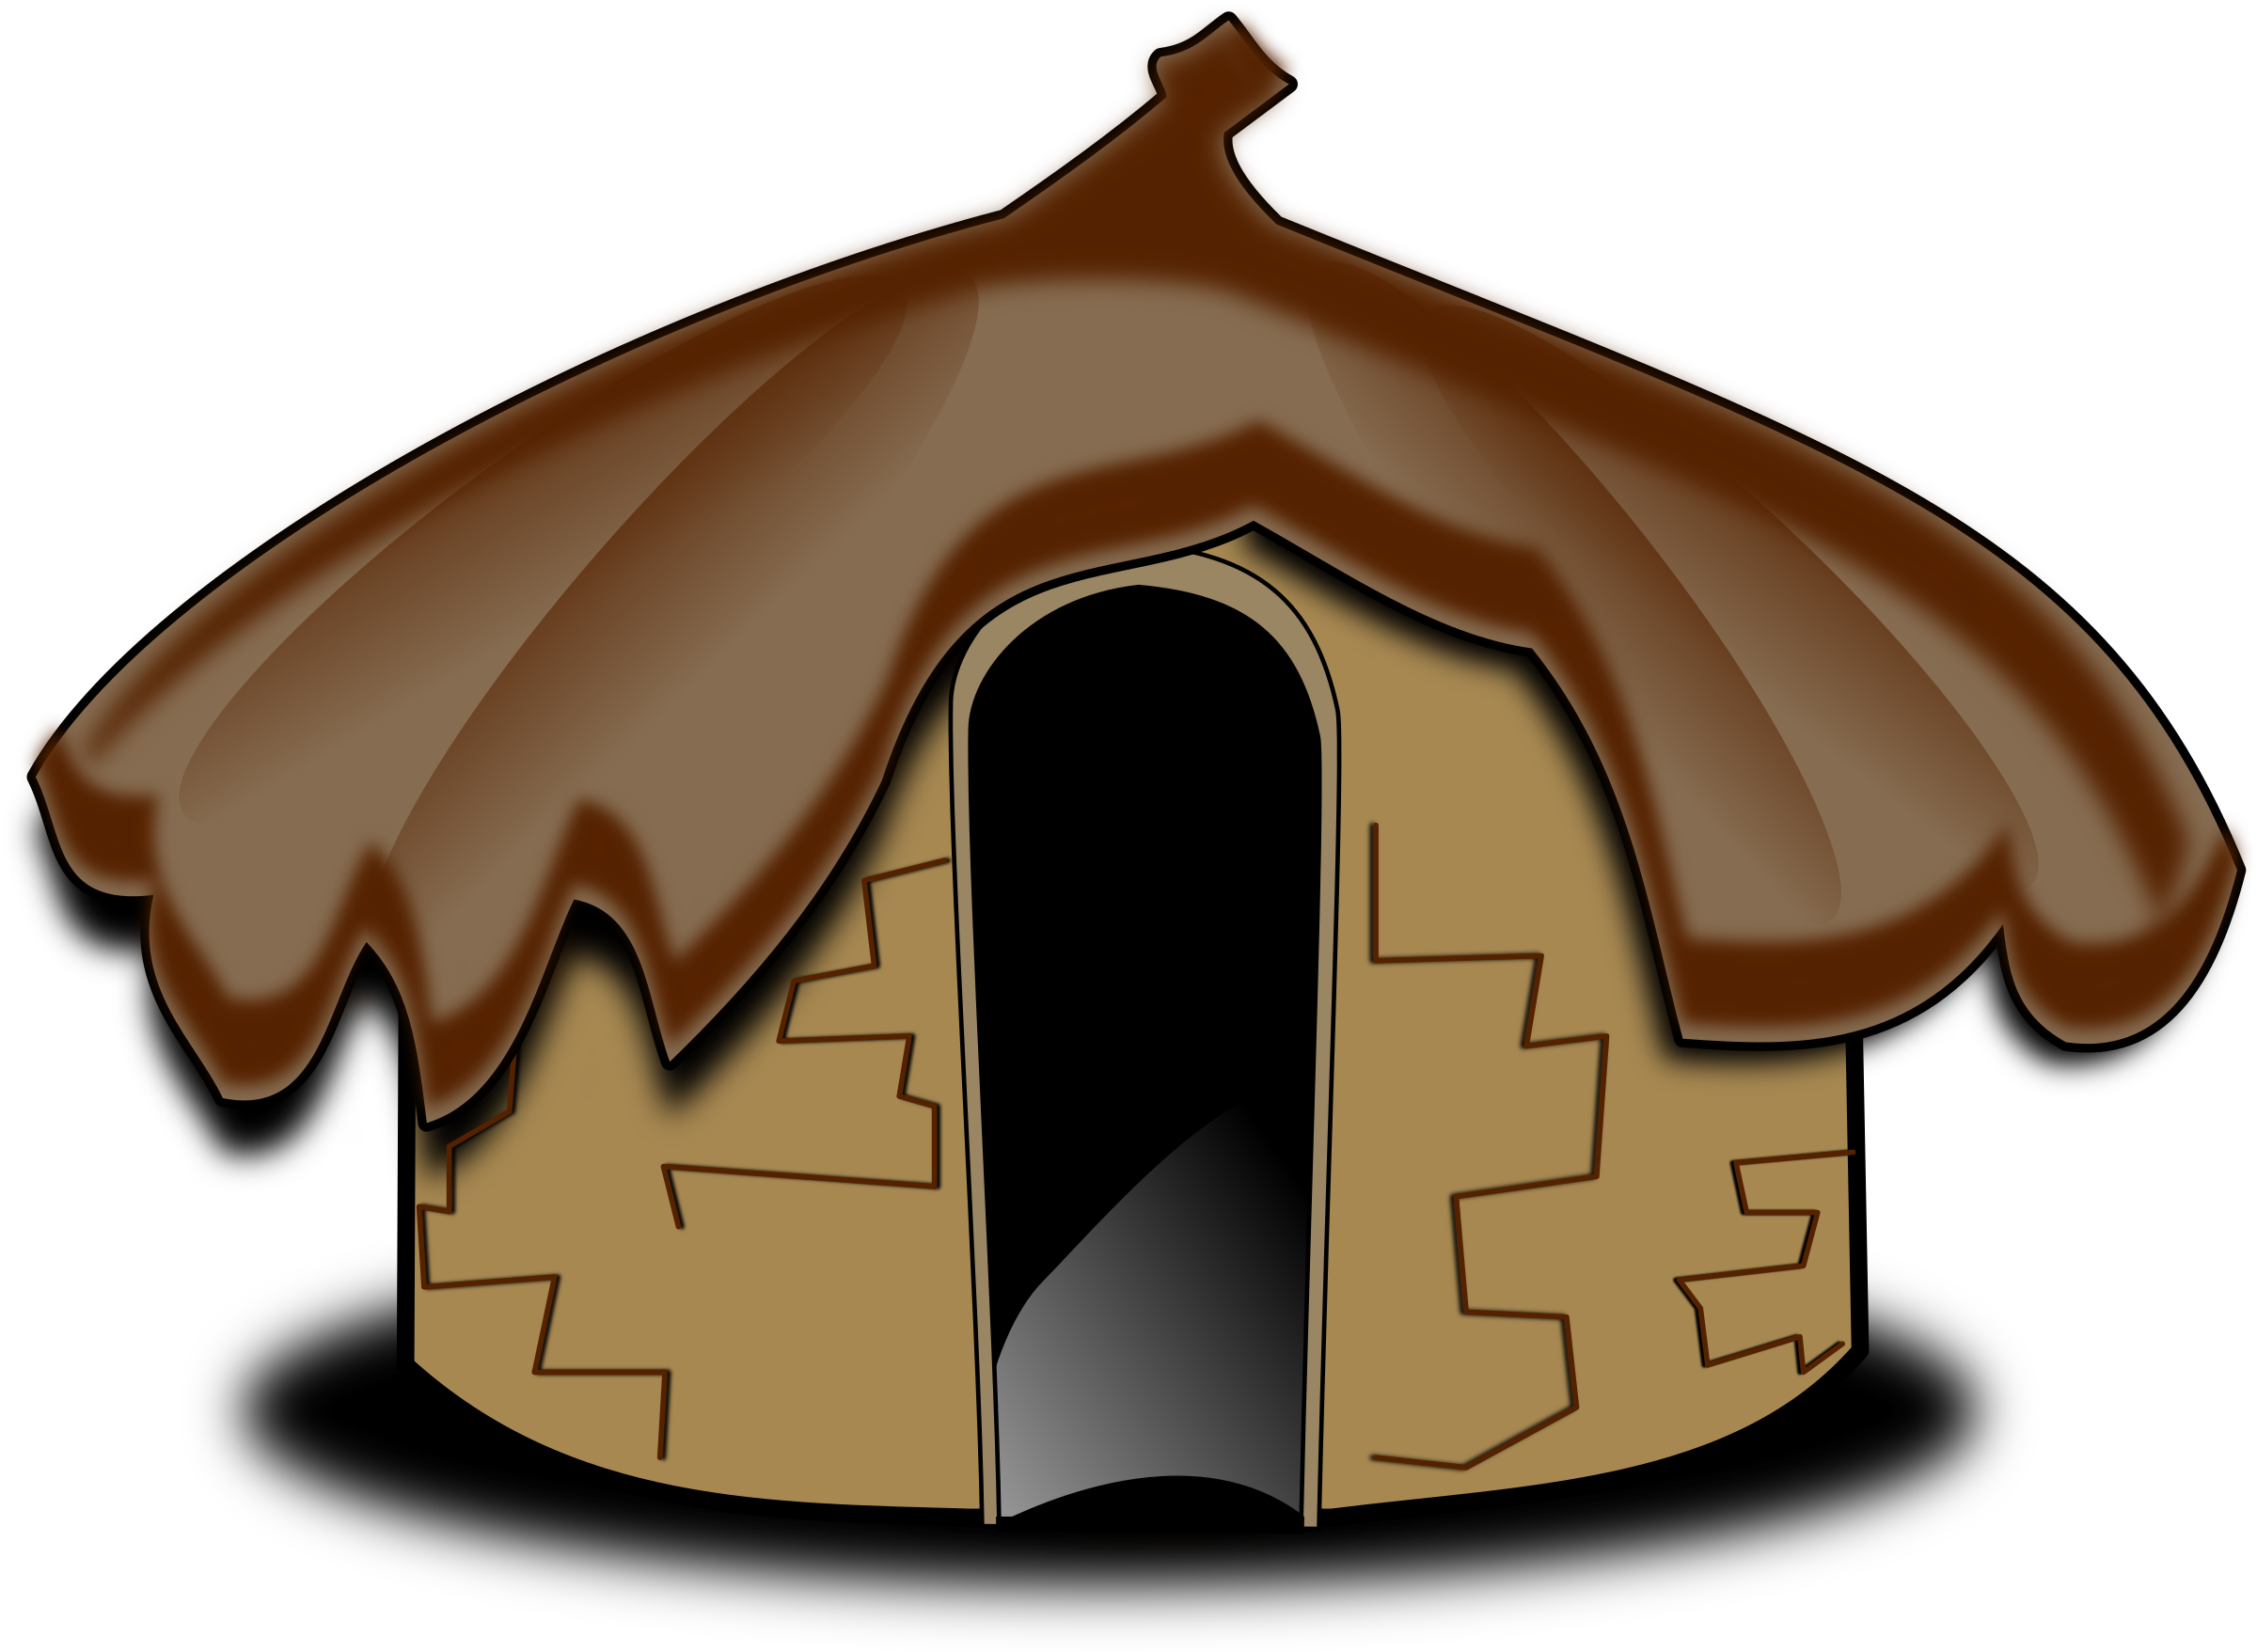 Mud house clipart.